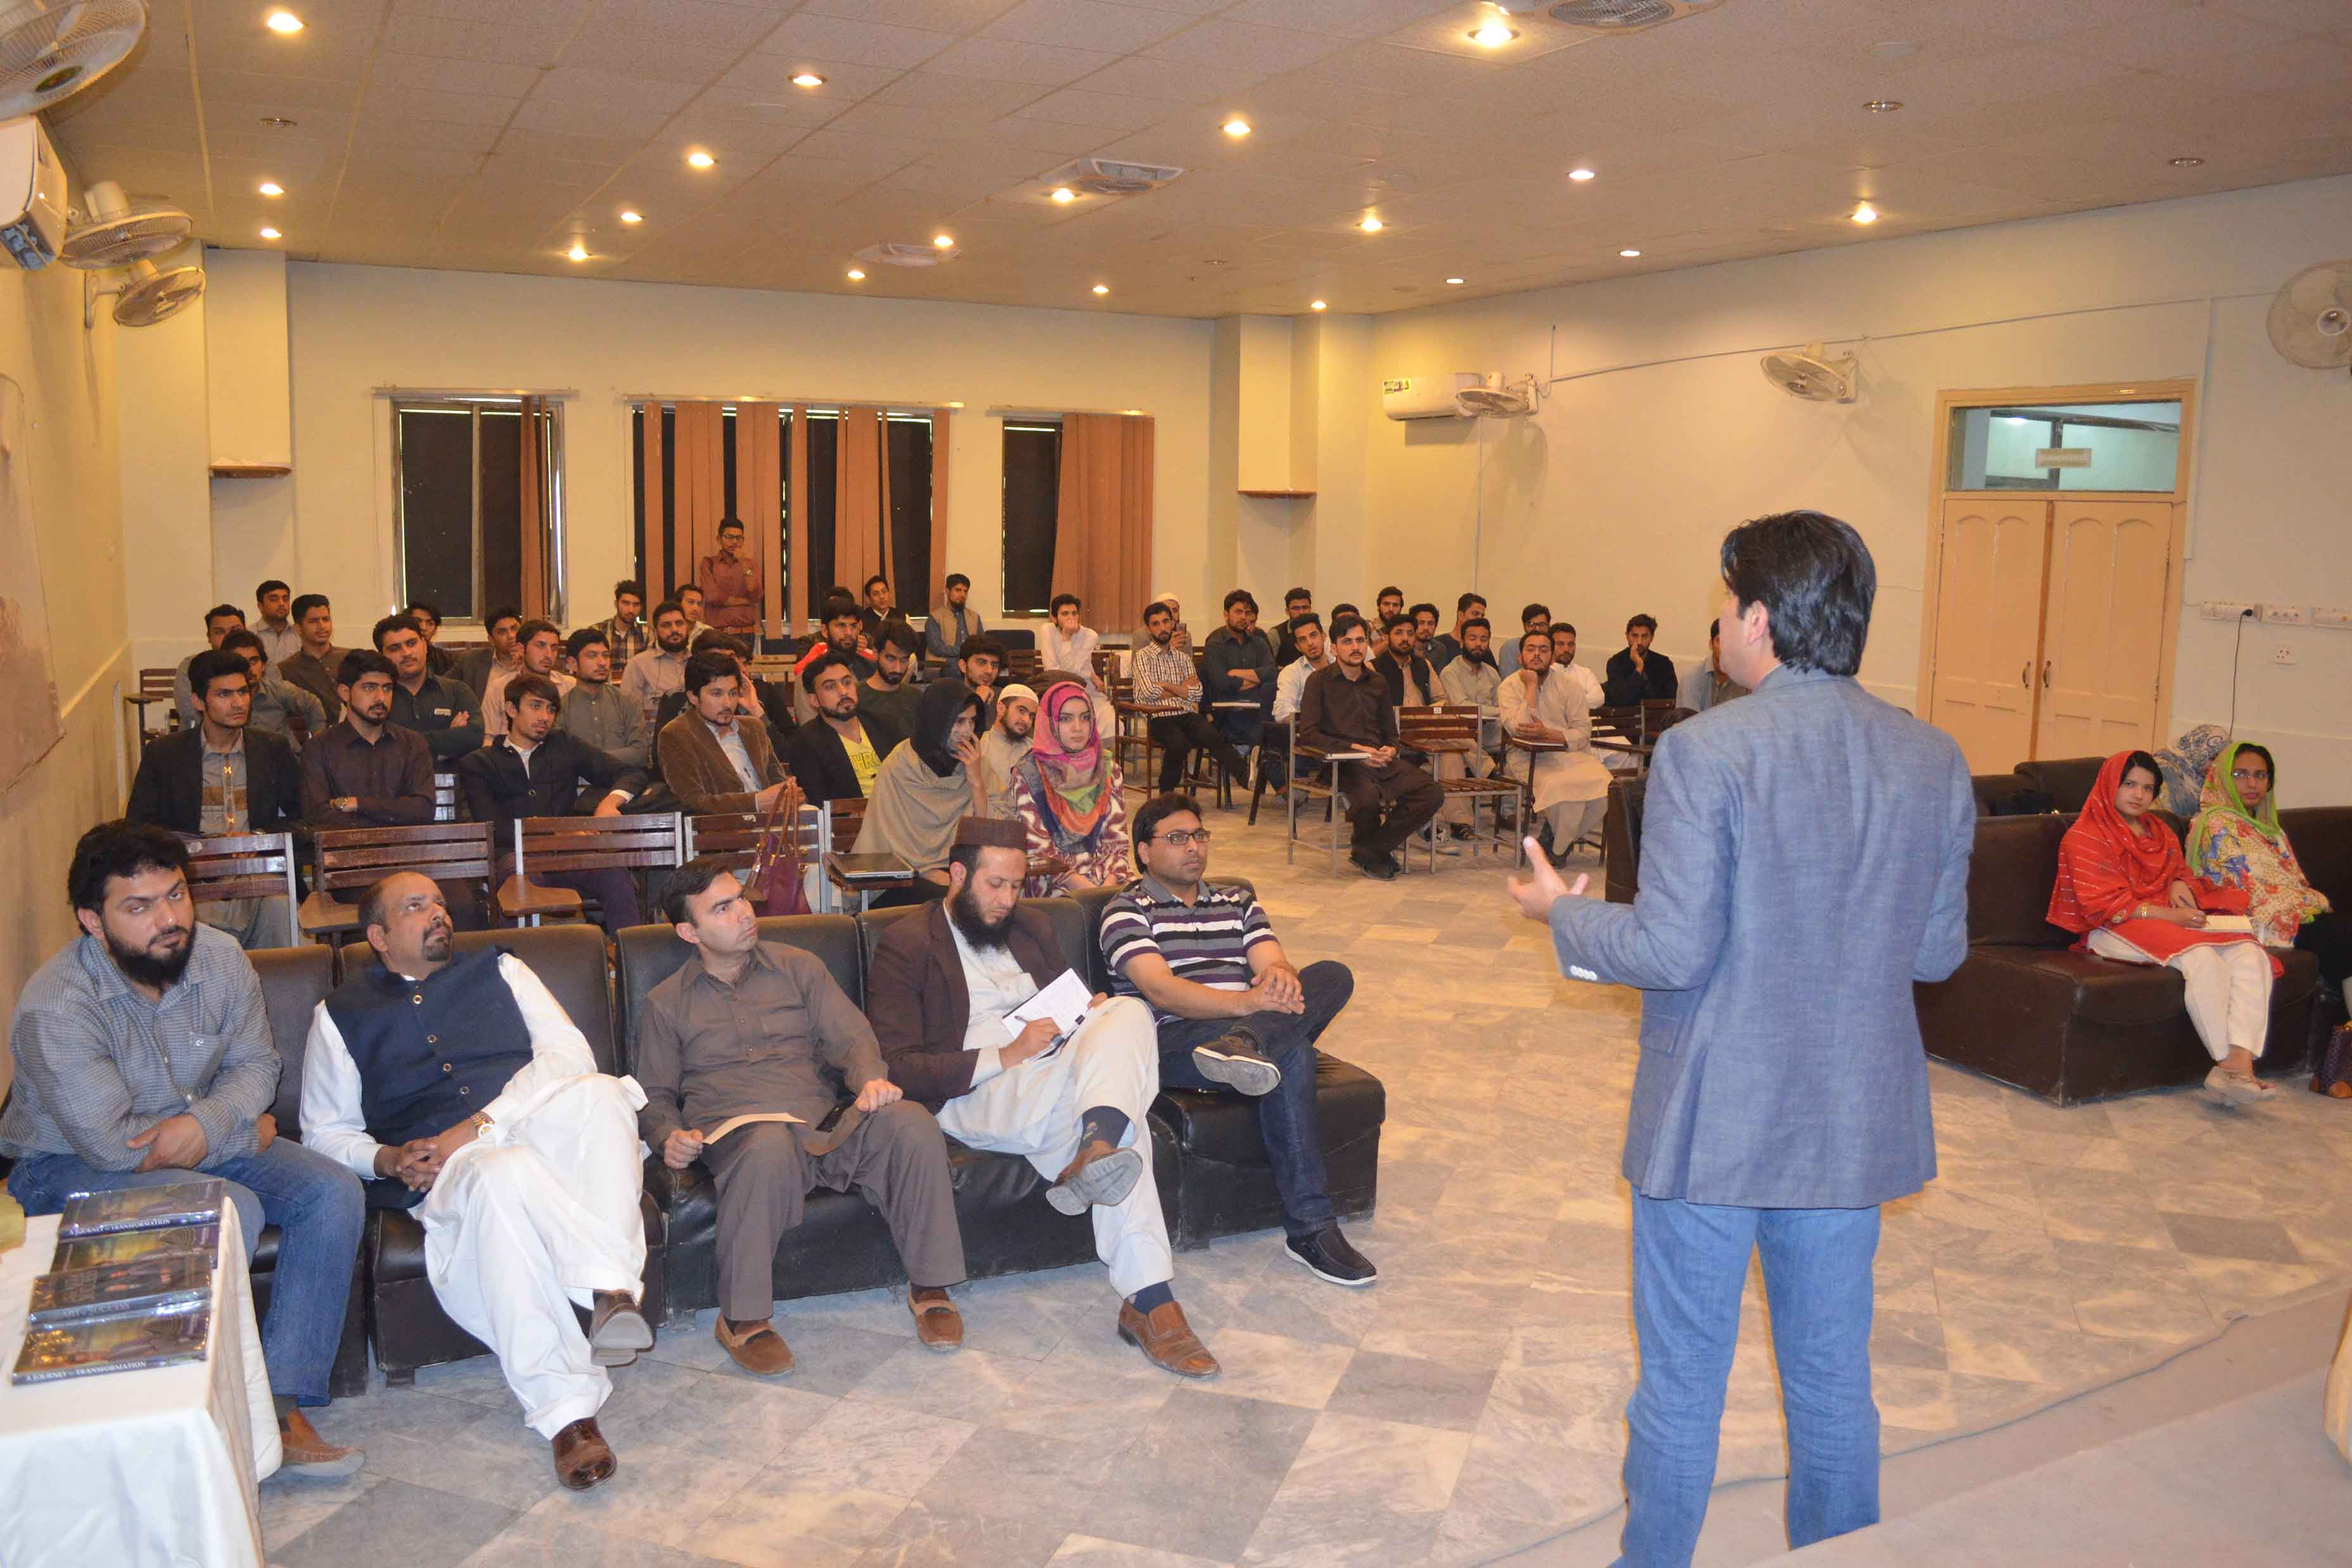 A seminar on How to crack the code to success and become a master entrepreneur